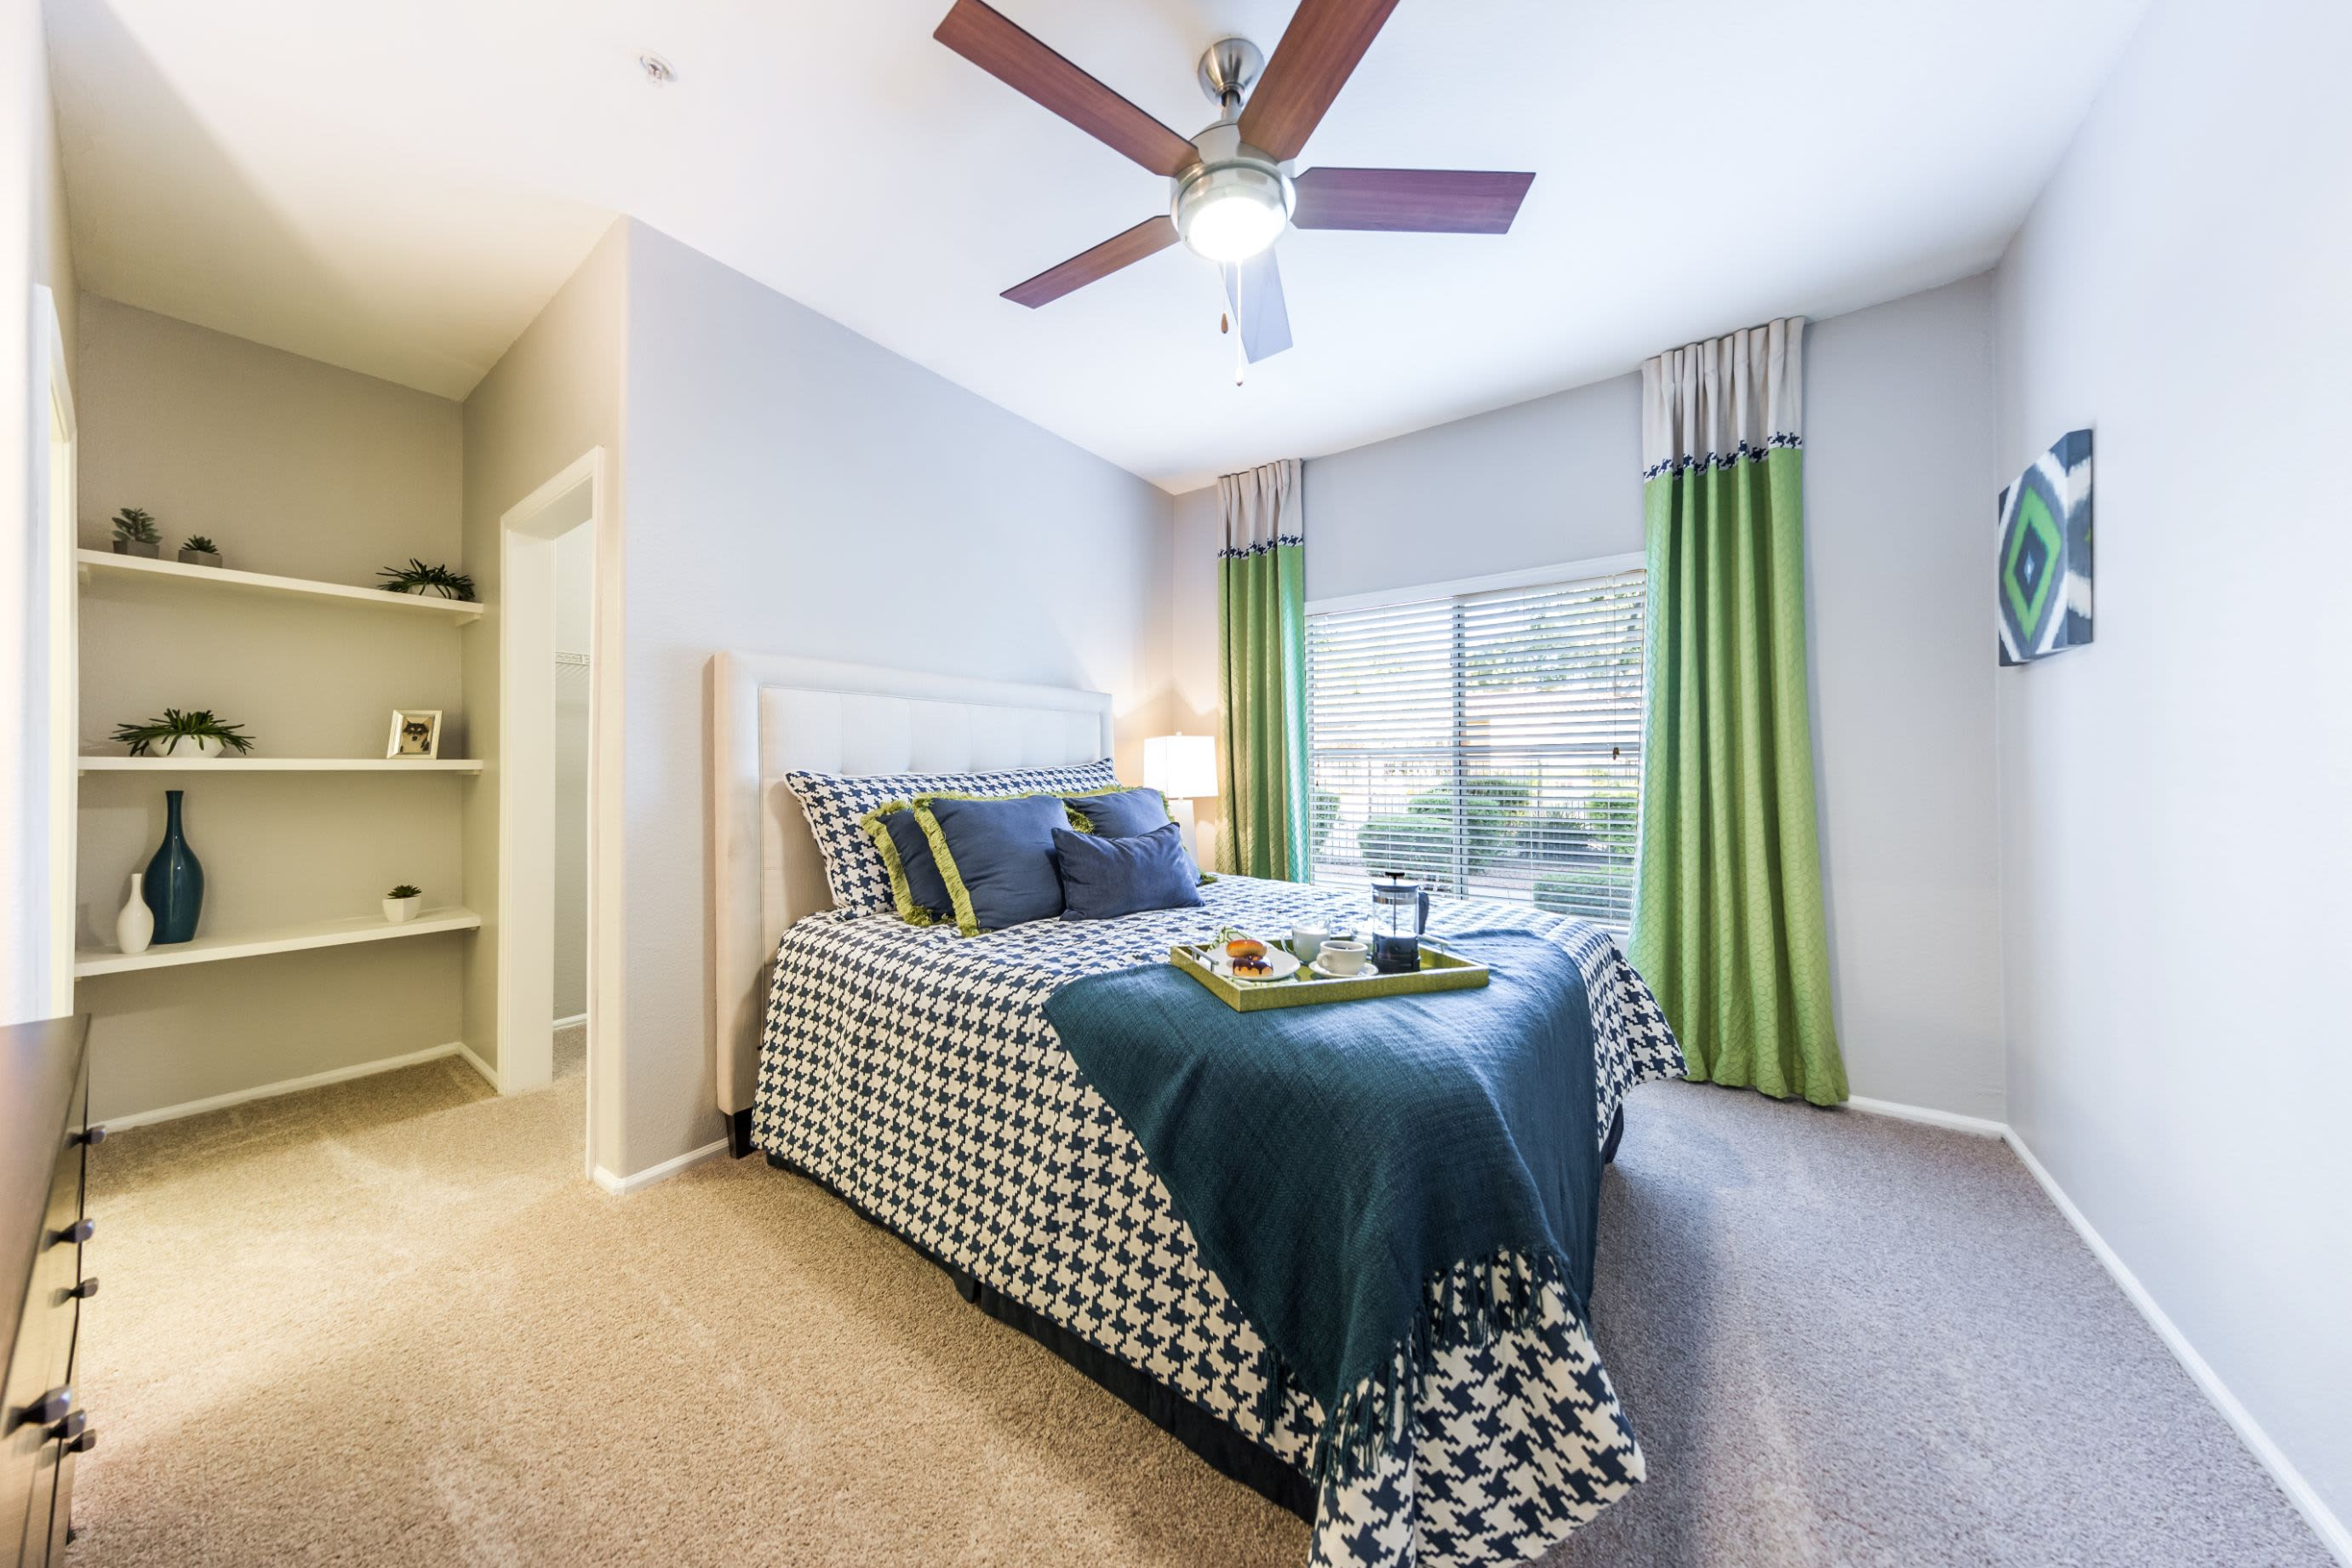 Bedroom with large window at Marquis at Arrowhead in Peoria, Arizona